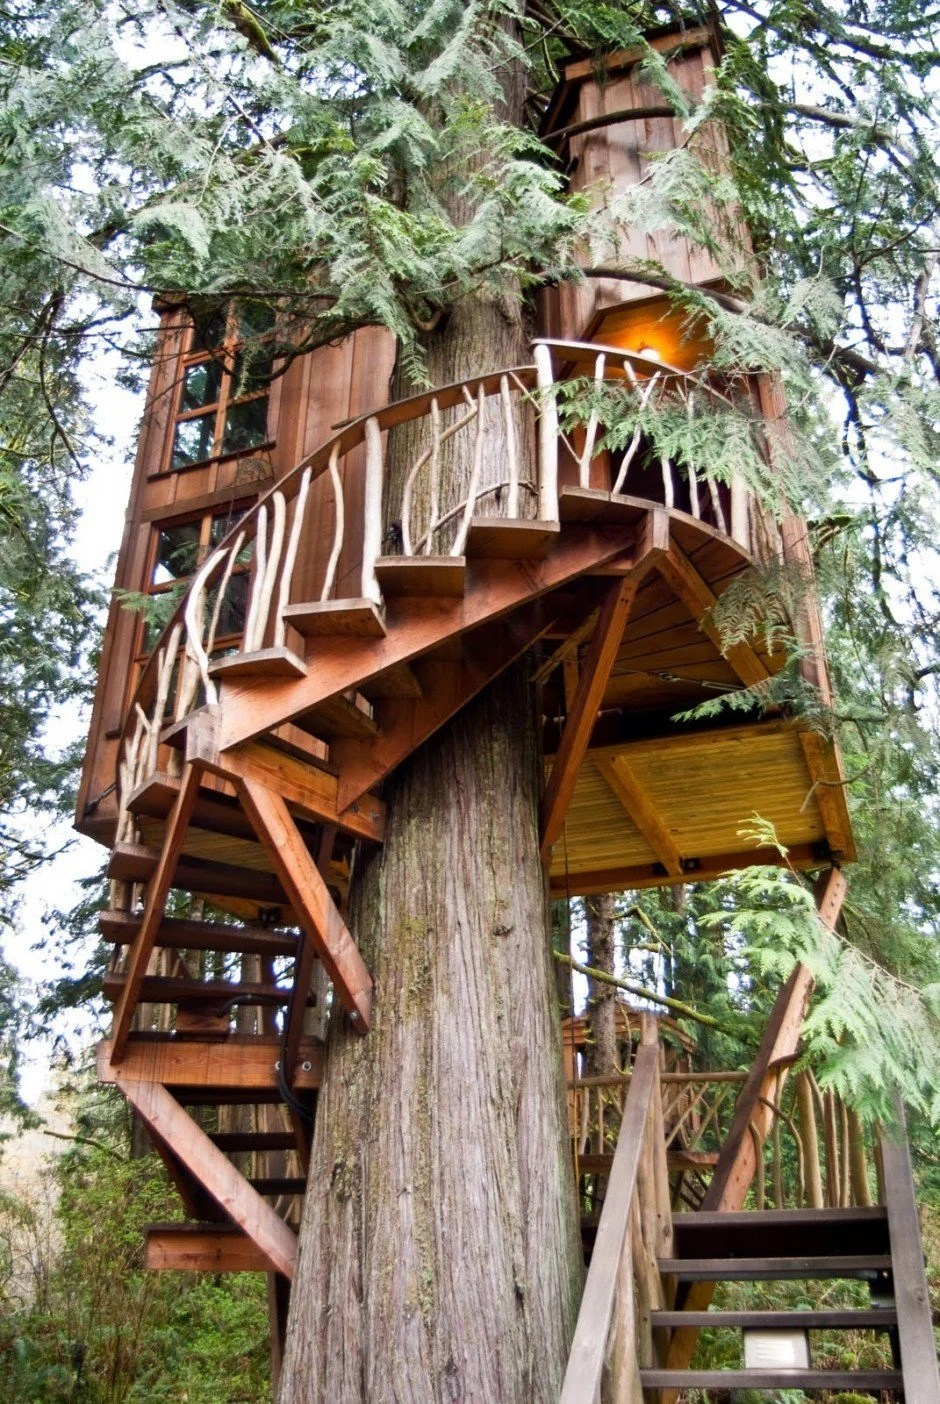 Worlds most popular treehousesResort Hotels with